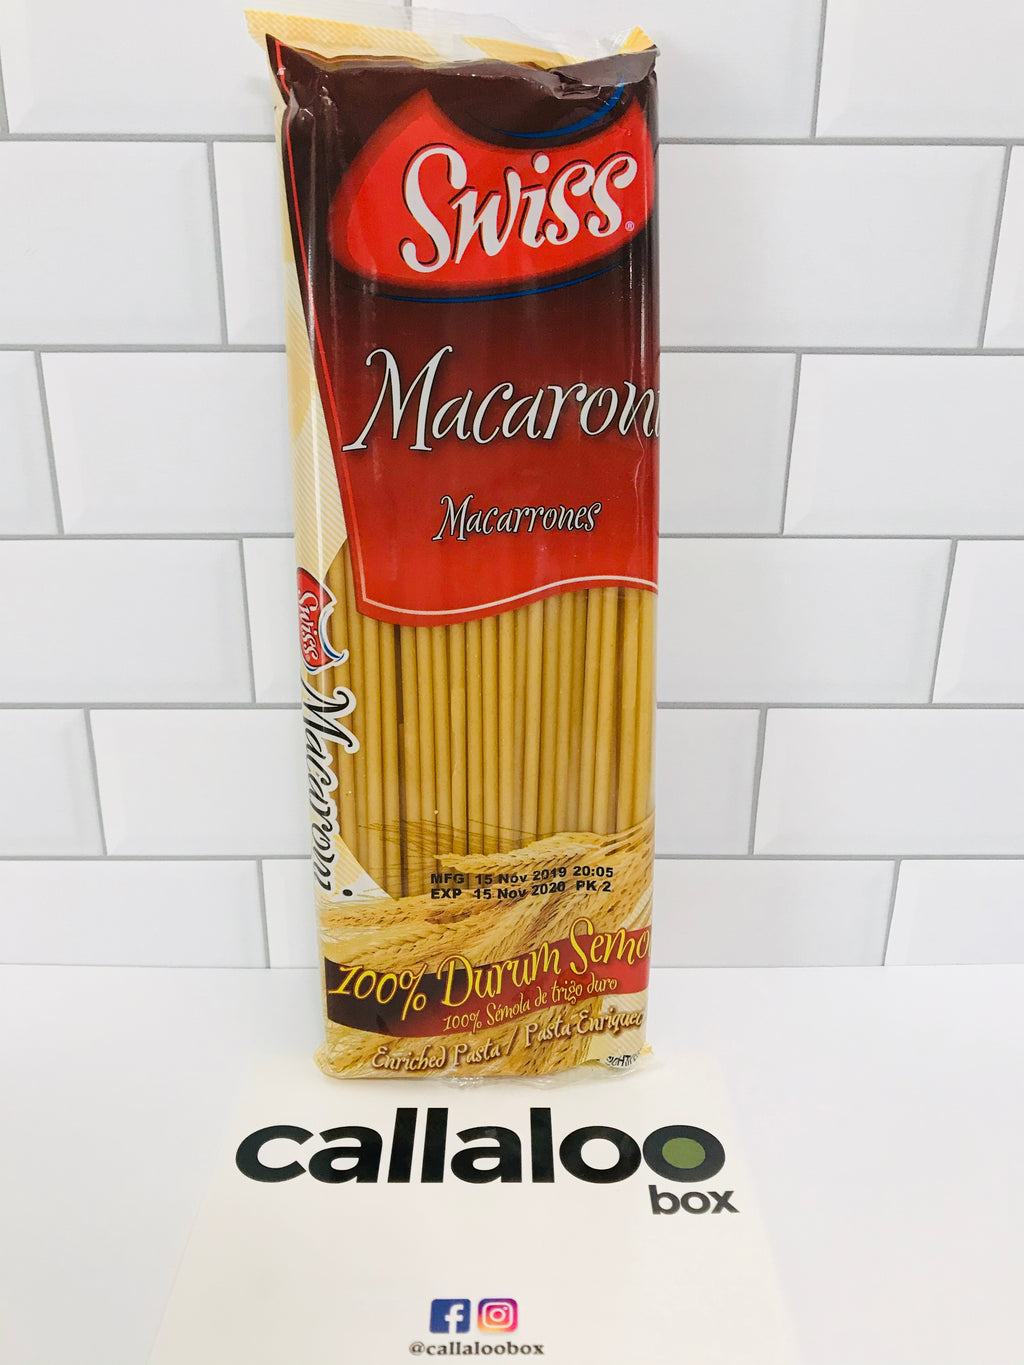 Callaloo Box Trinidad and Tobago Subscription Box Caribbean Online Grocery Swiss Macaroni